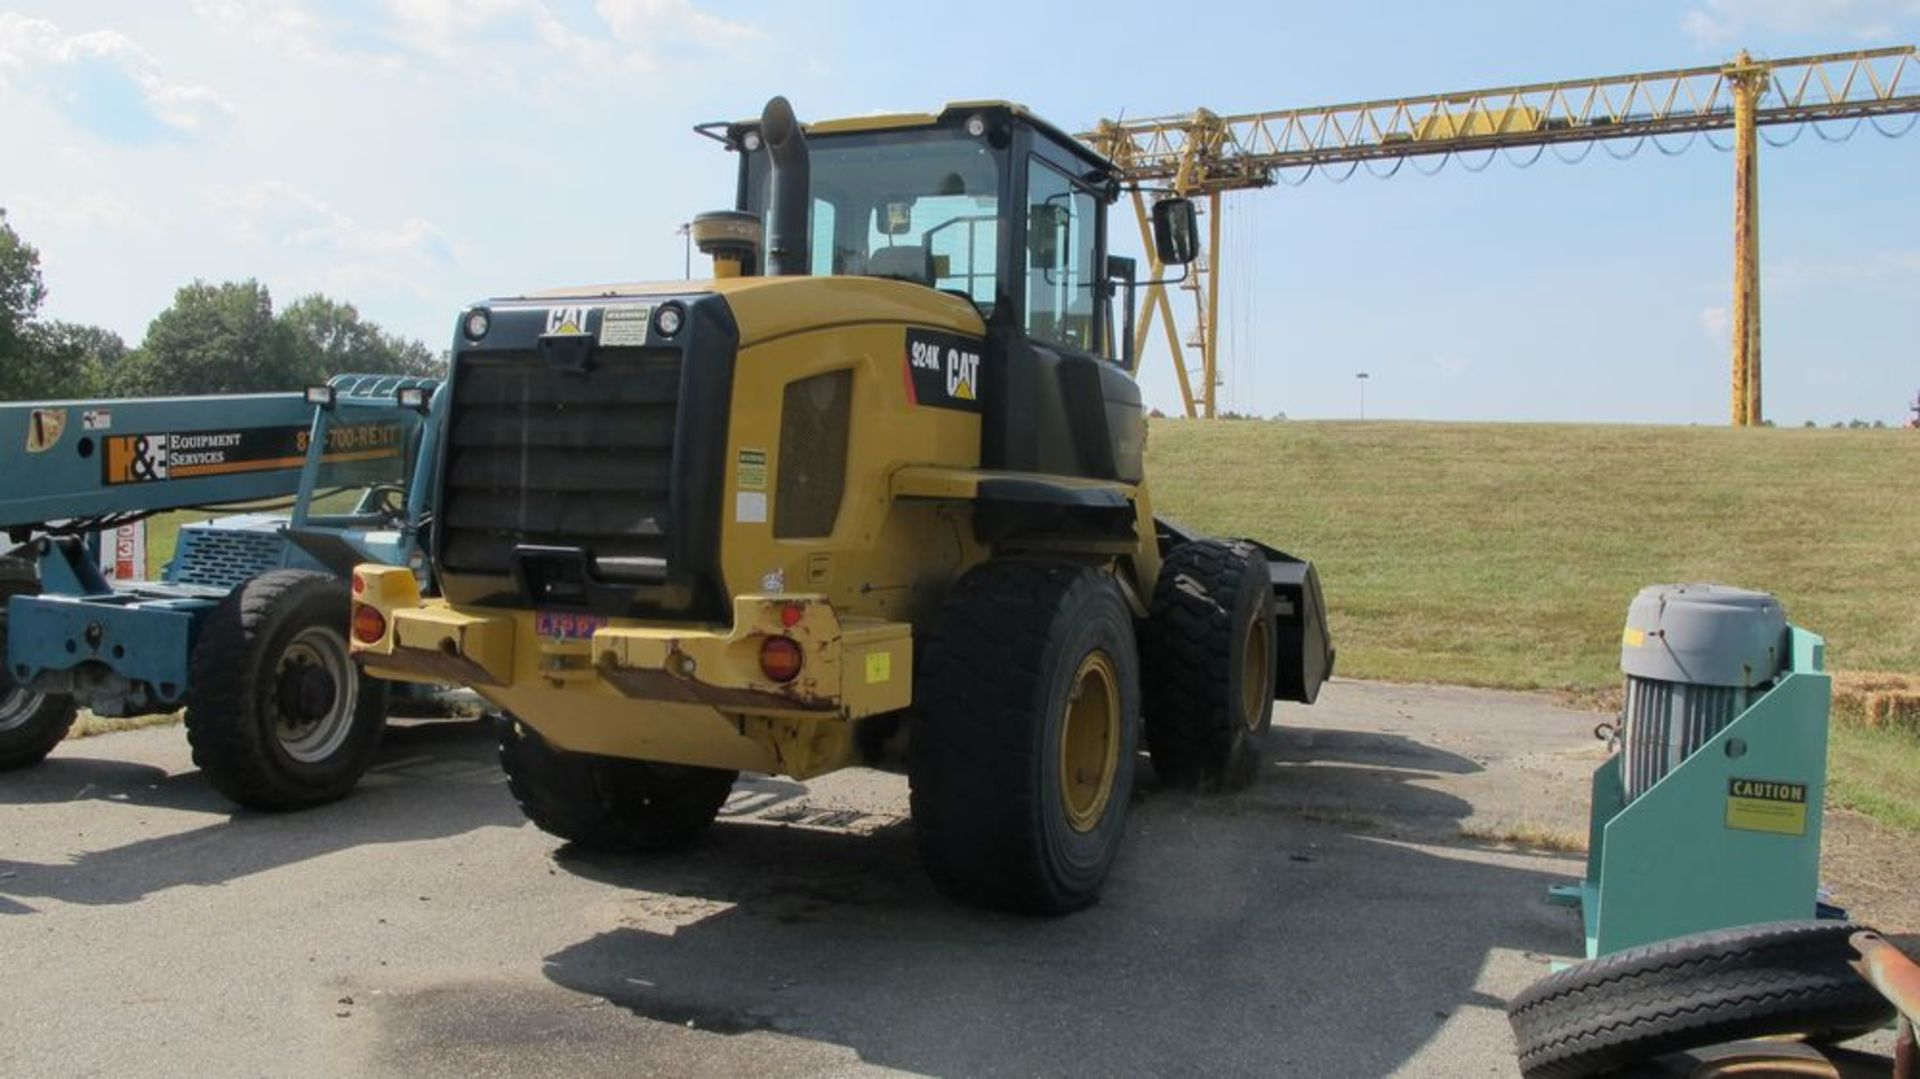 Lot 4 - CATERPILLAR 924K FRONT END LOADER (NEEDS REPAIR) (WOOD YARD - PARKING LOT)